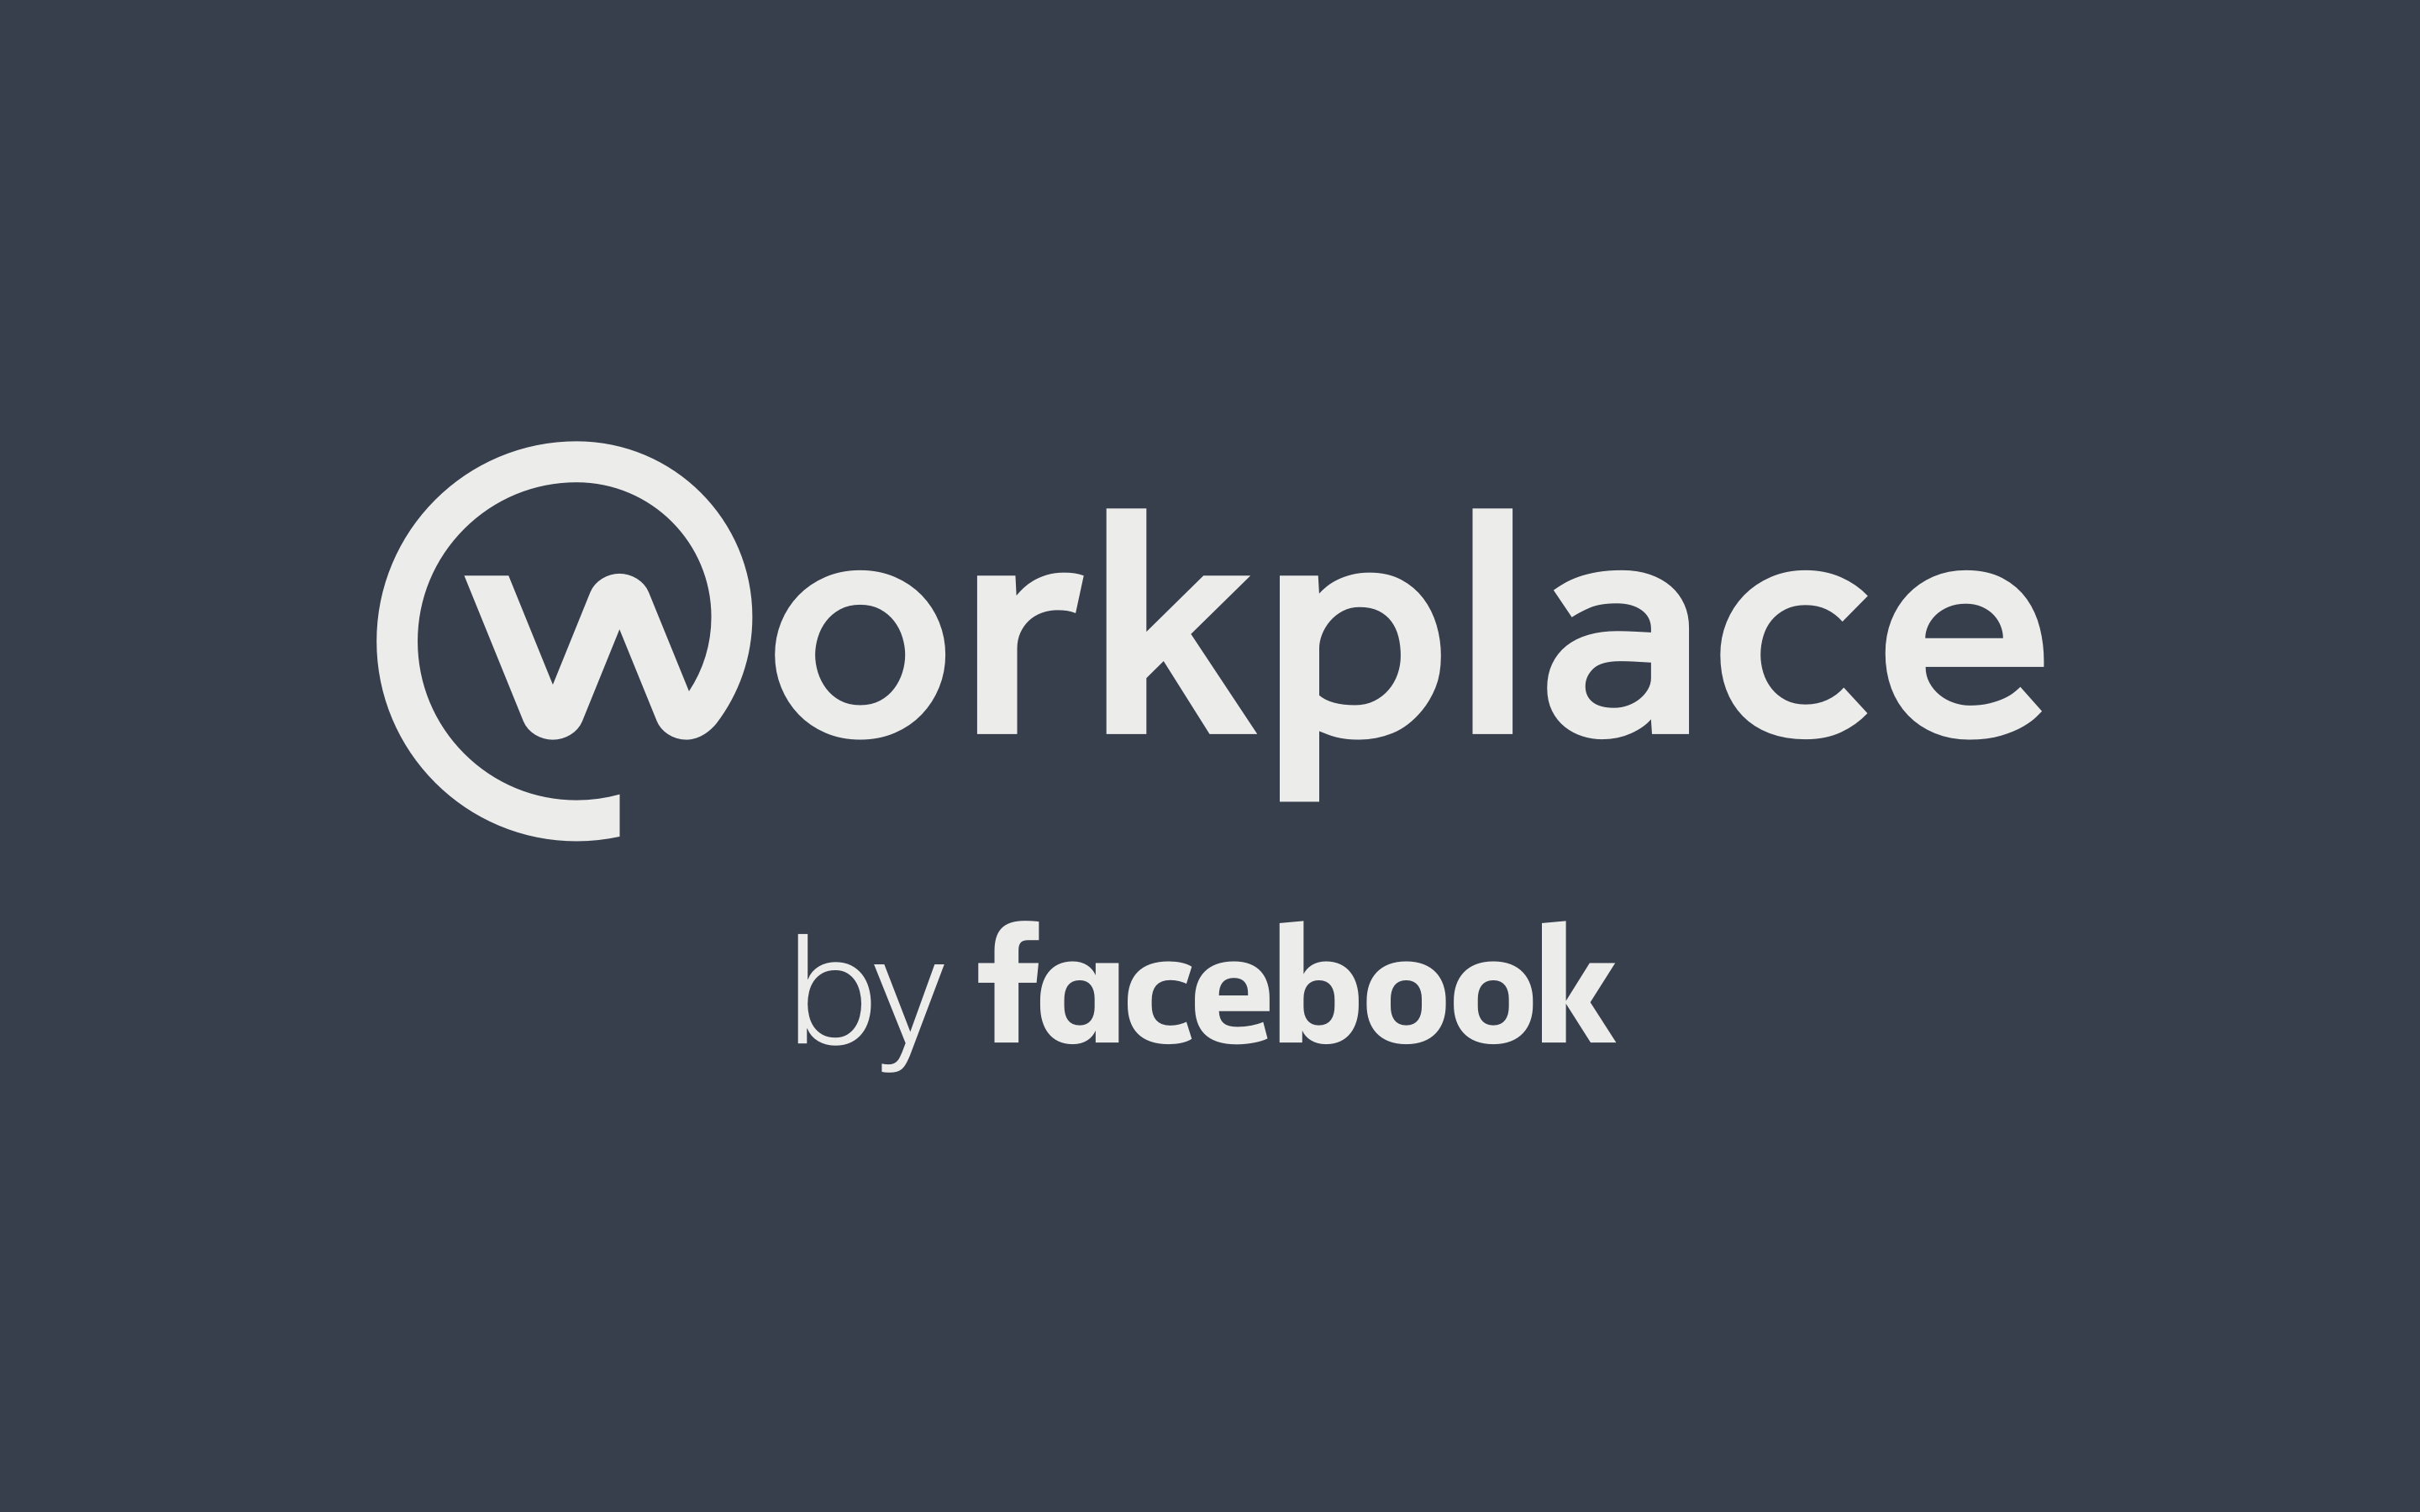 facebook workplace adds office integration for onedrive and document